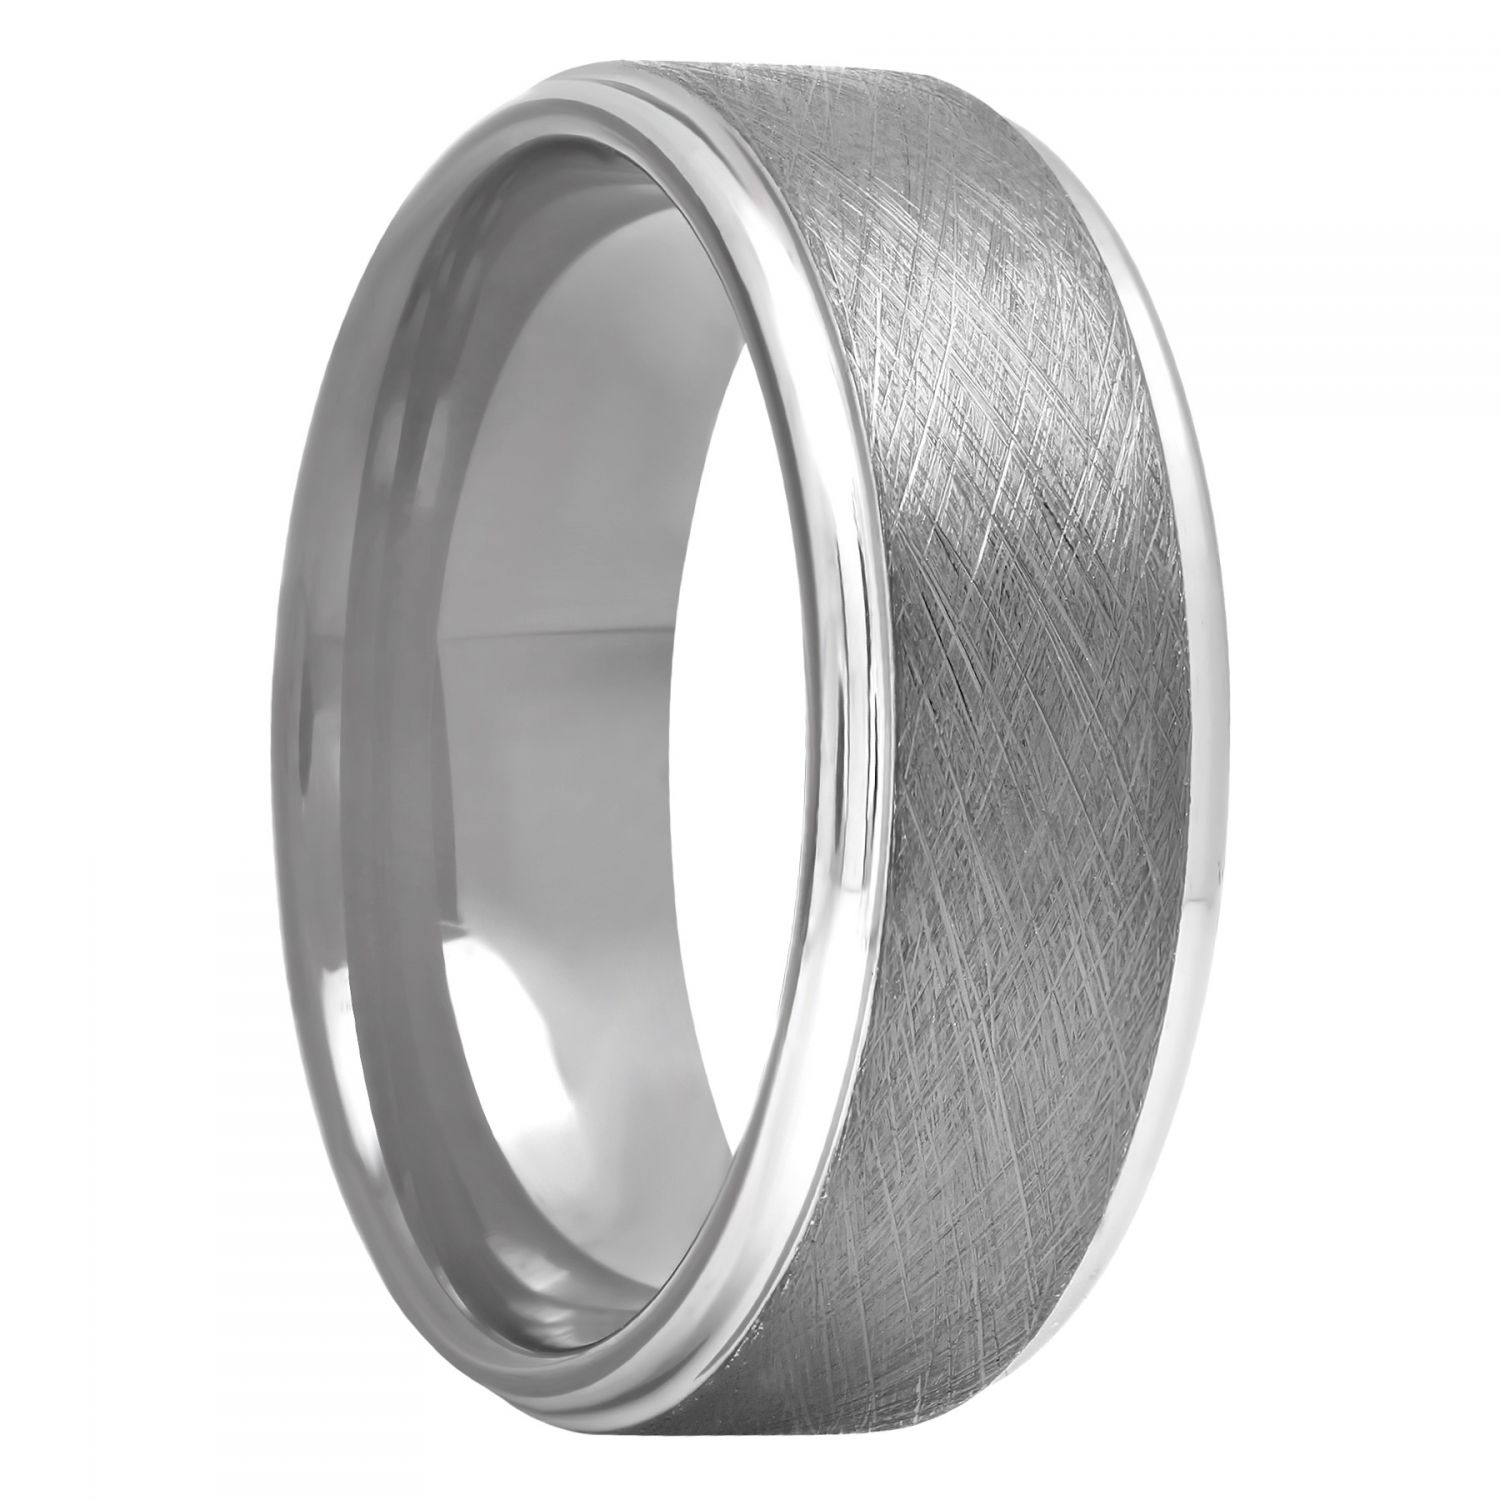 Tantalum Gunmetal Scratch Finish Band, 8mm